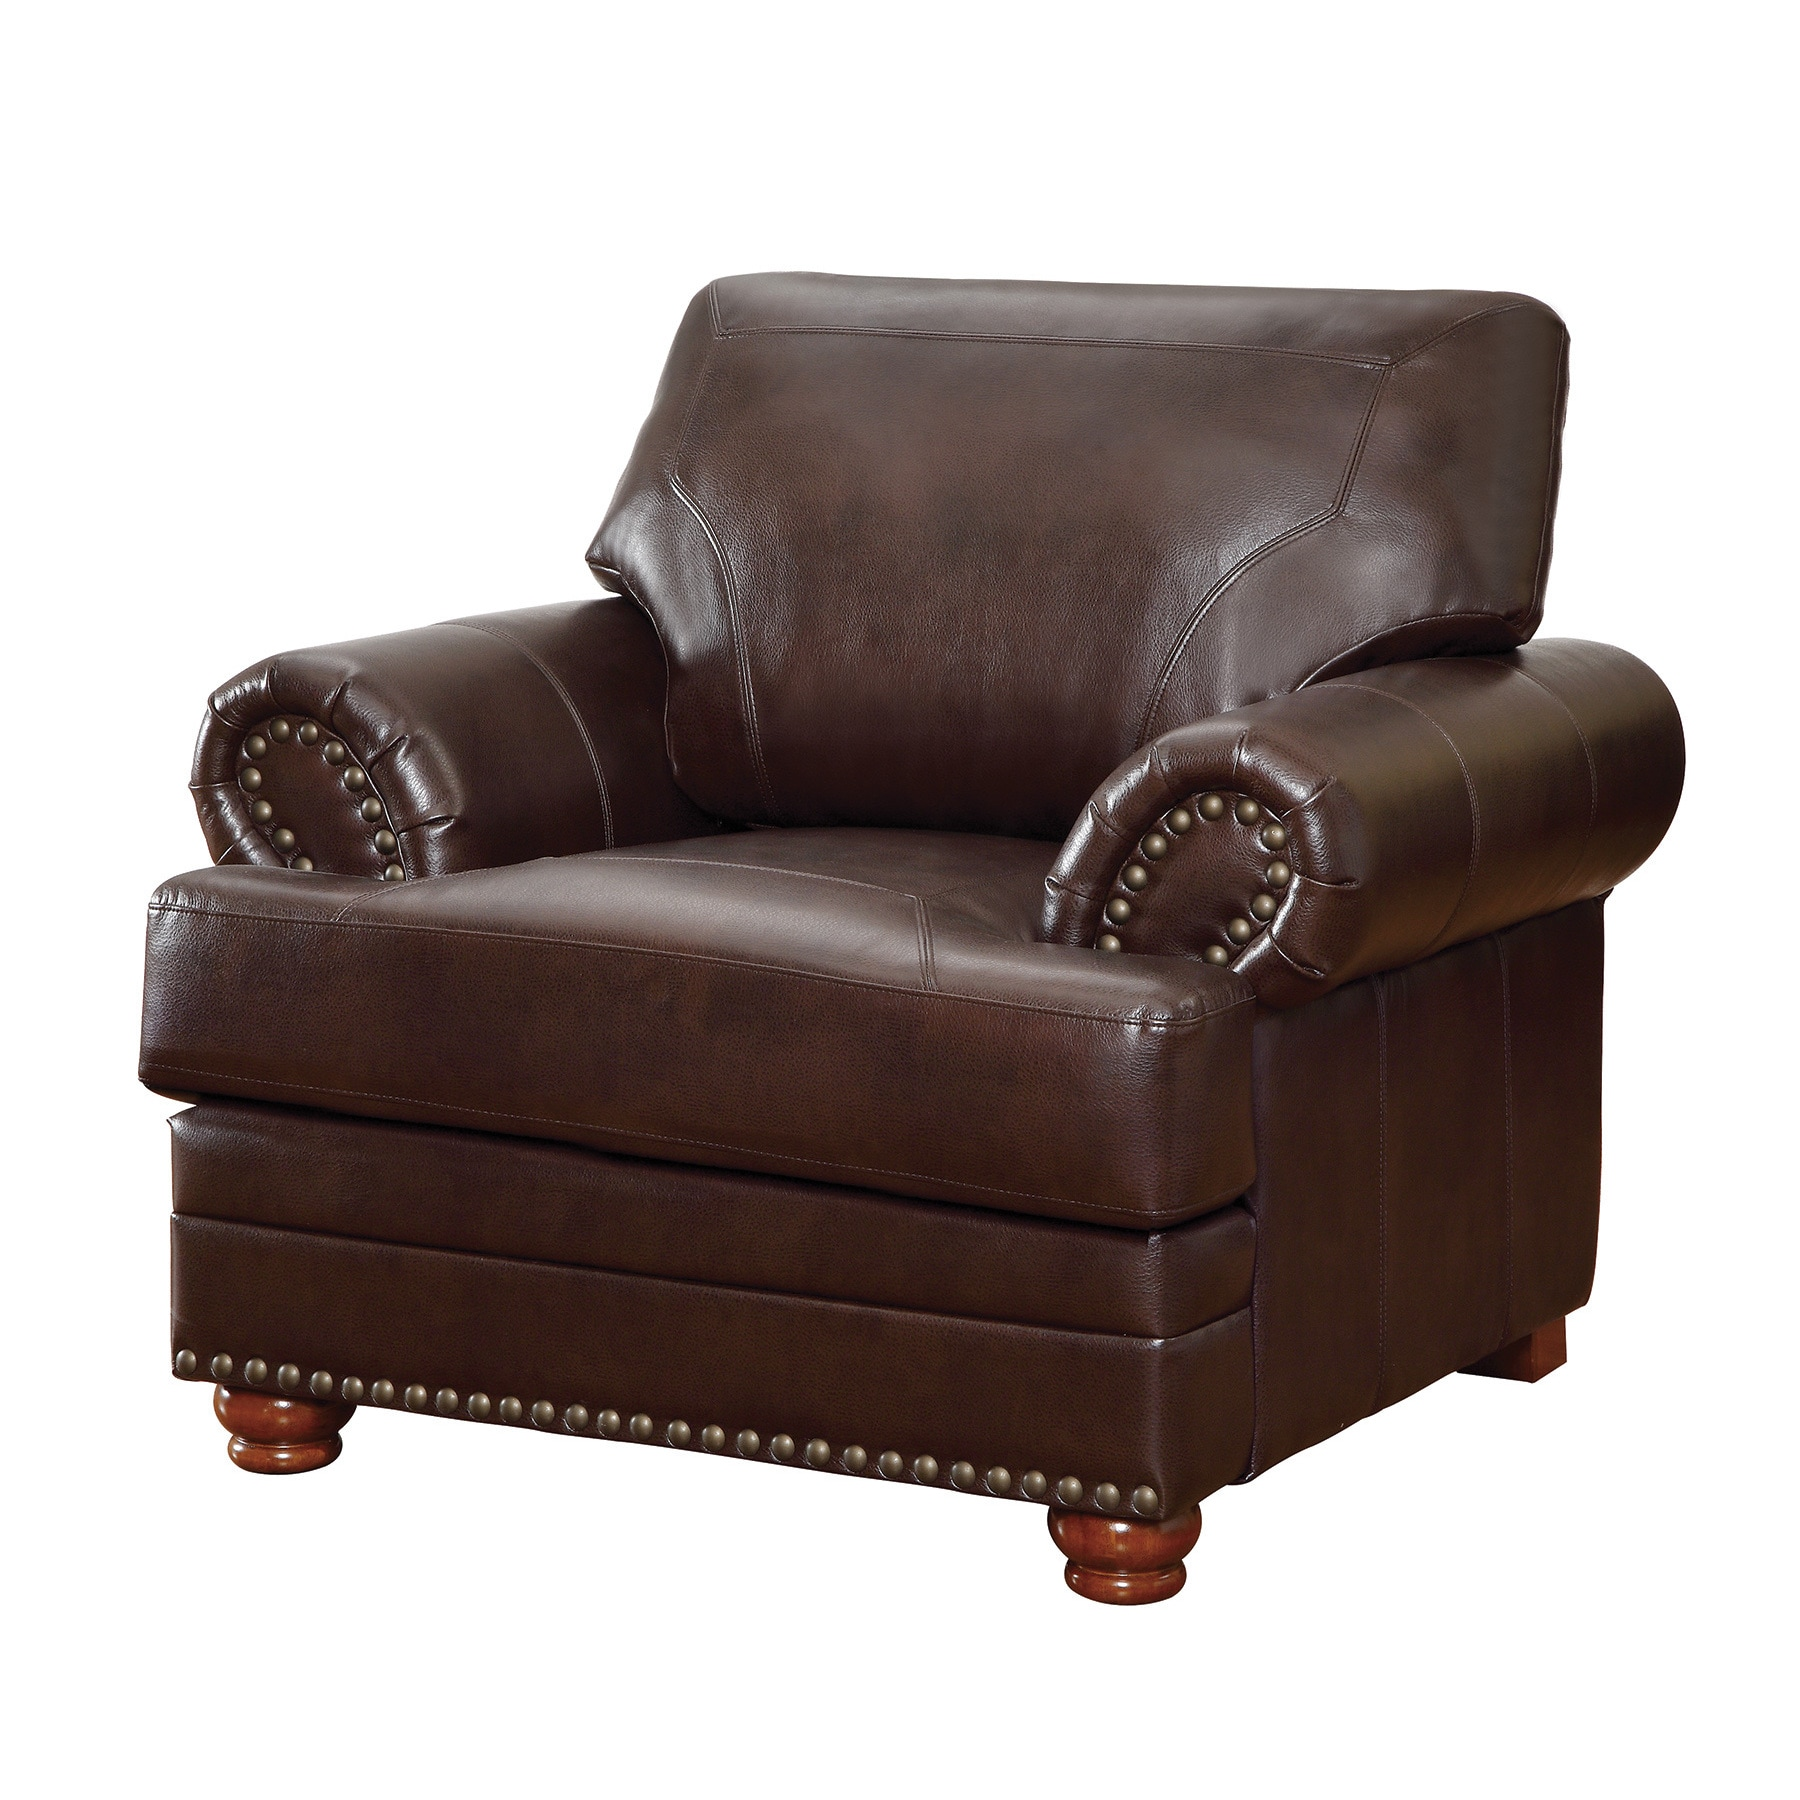 Coaster Company Colton Brown Smooth Bonded Leather Arm Chair Free Shipping Today 12186617